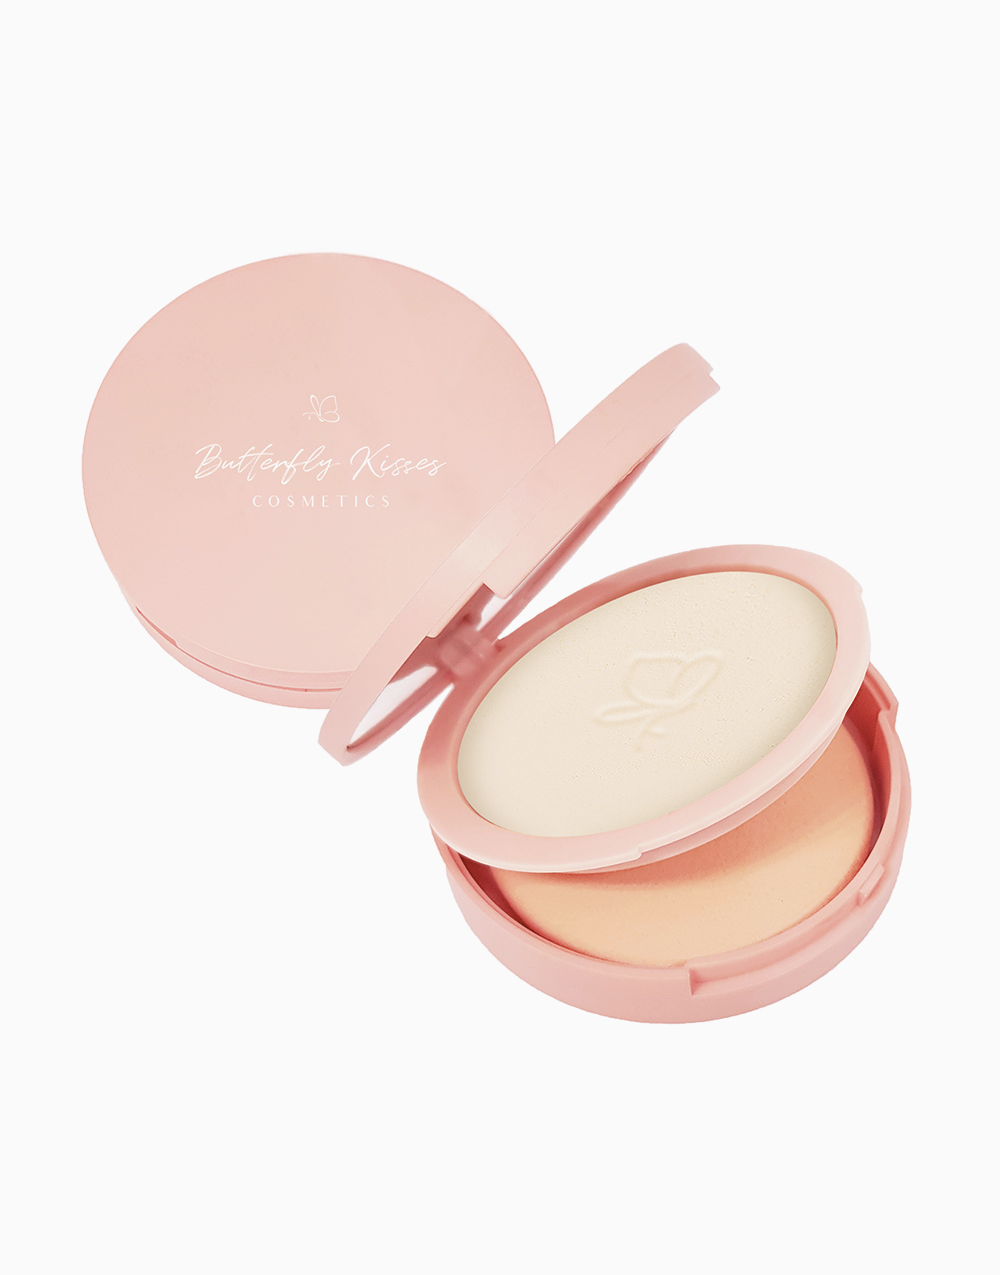 Skin Perfecting Matte Pressed Powder by Butterfly Kisses   Porcelain